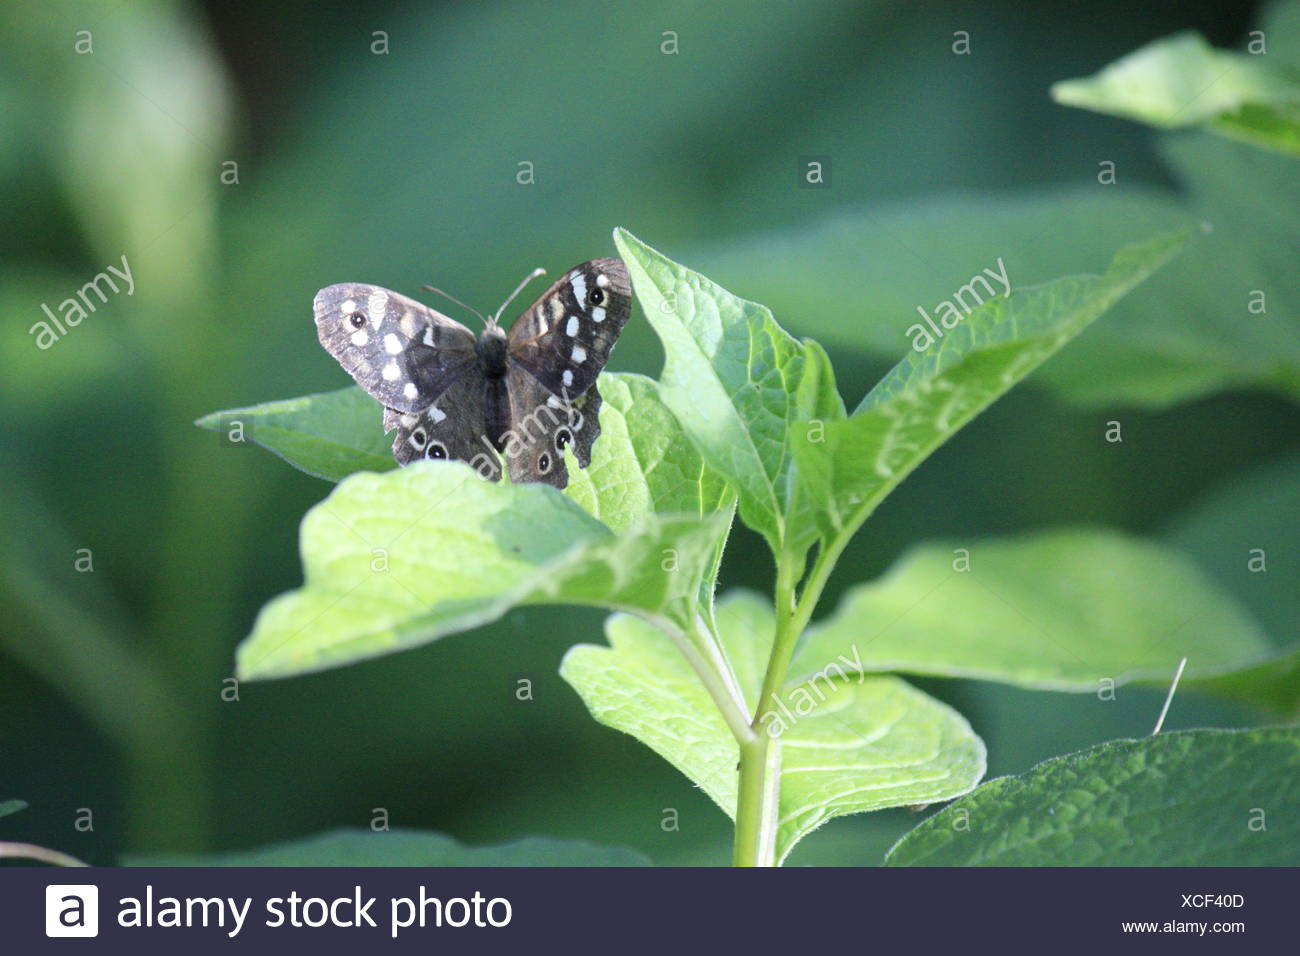 Foliage Butterfly on green plant - Stock Image